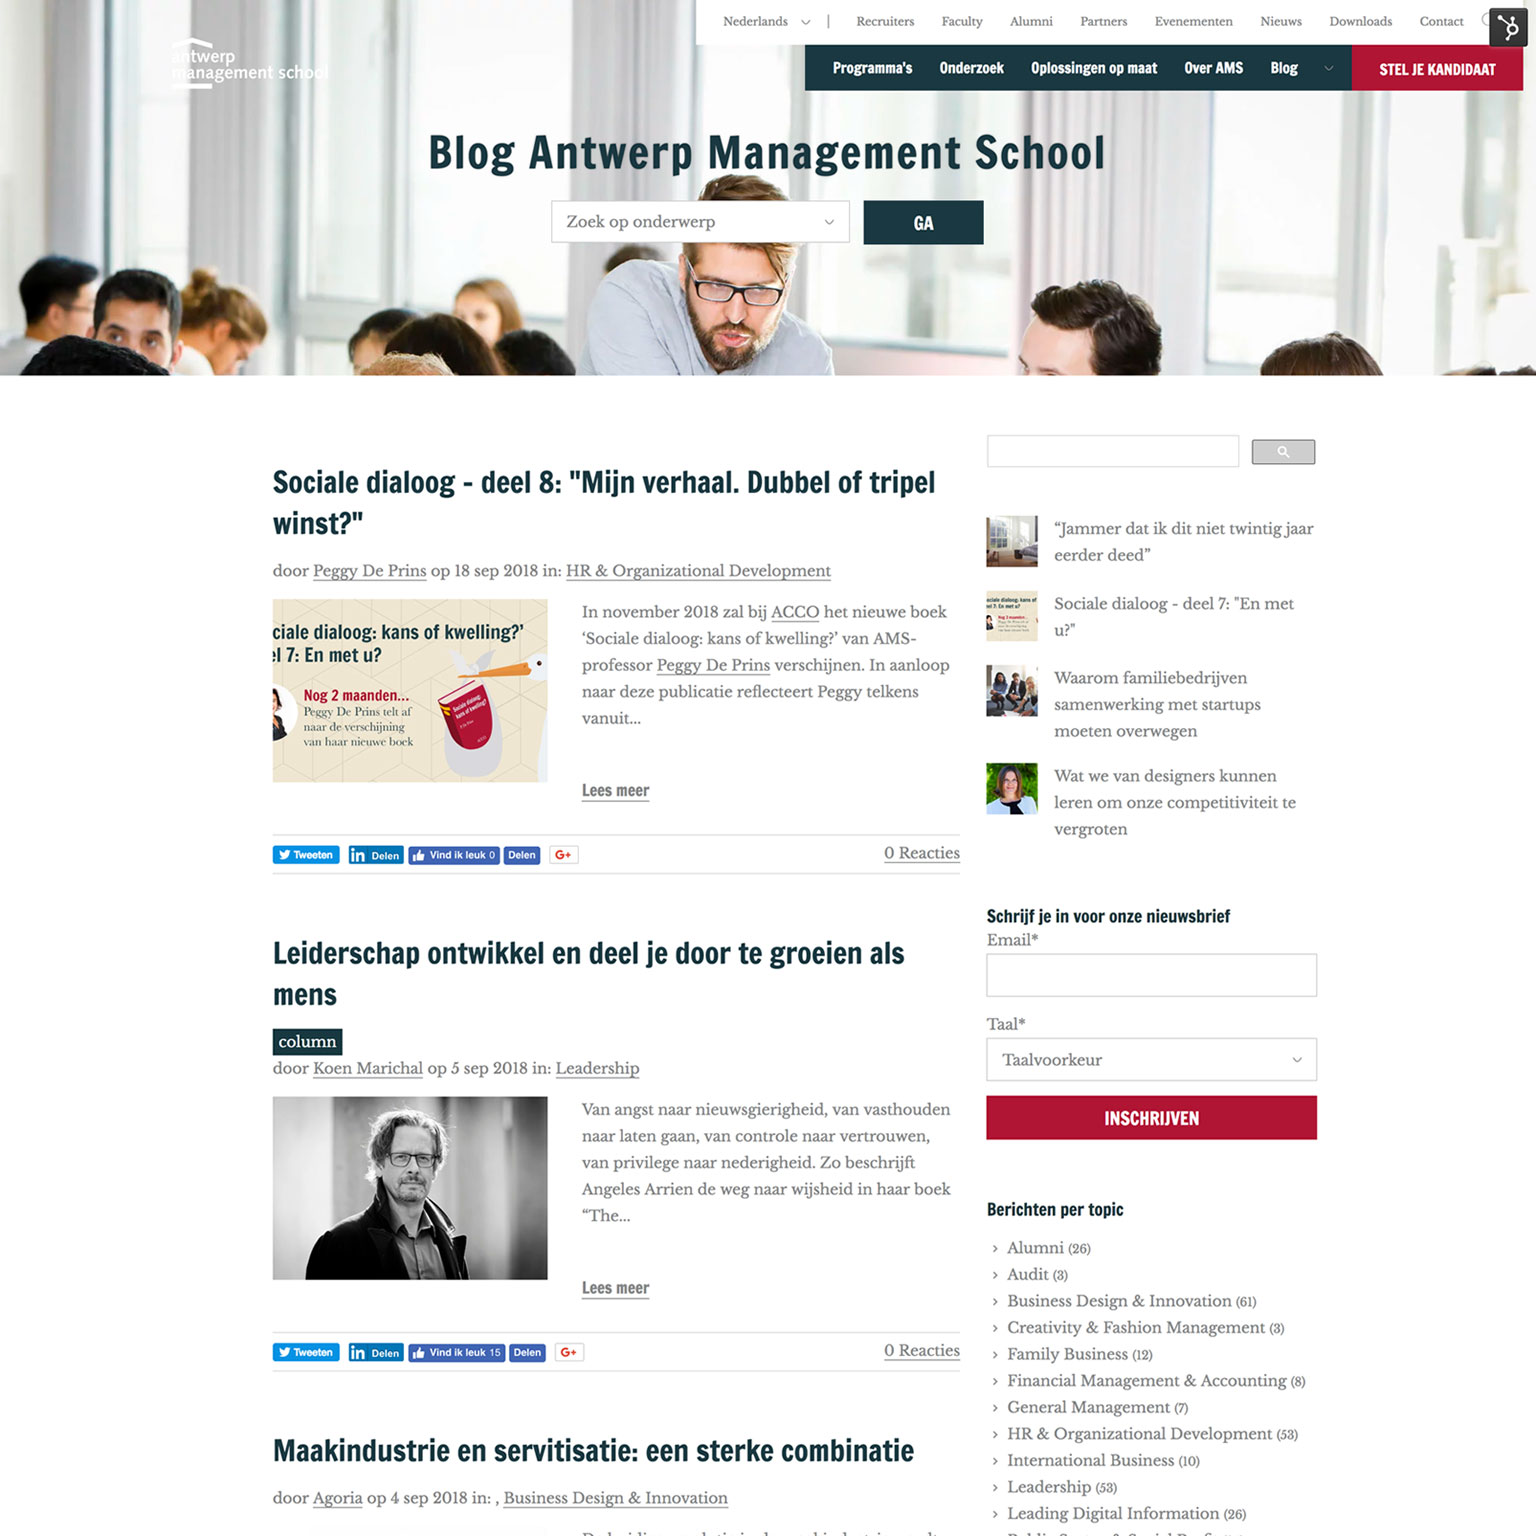 1536x1536-case-study-antwerpmanagementschool-blog-overview